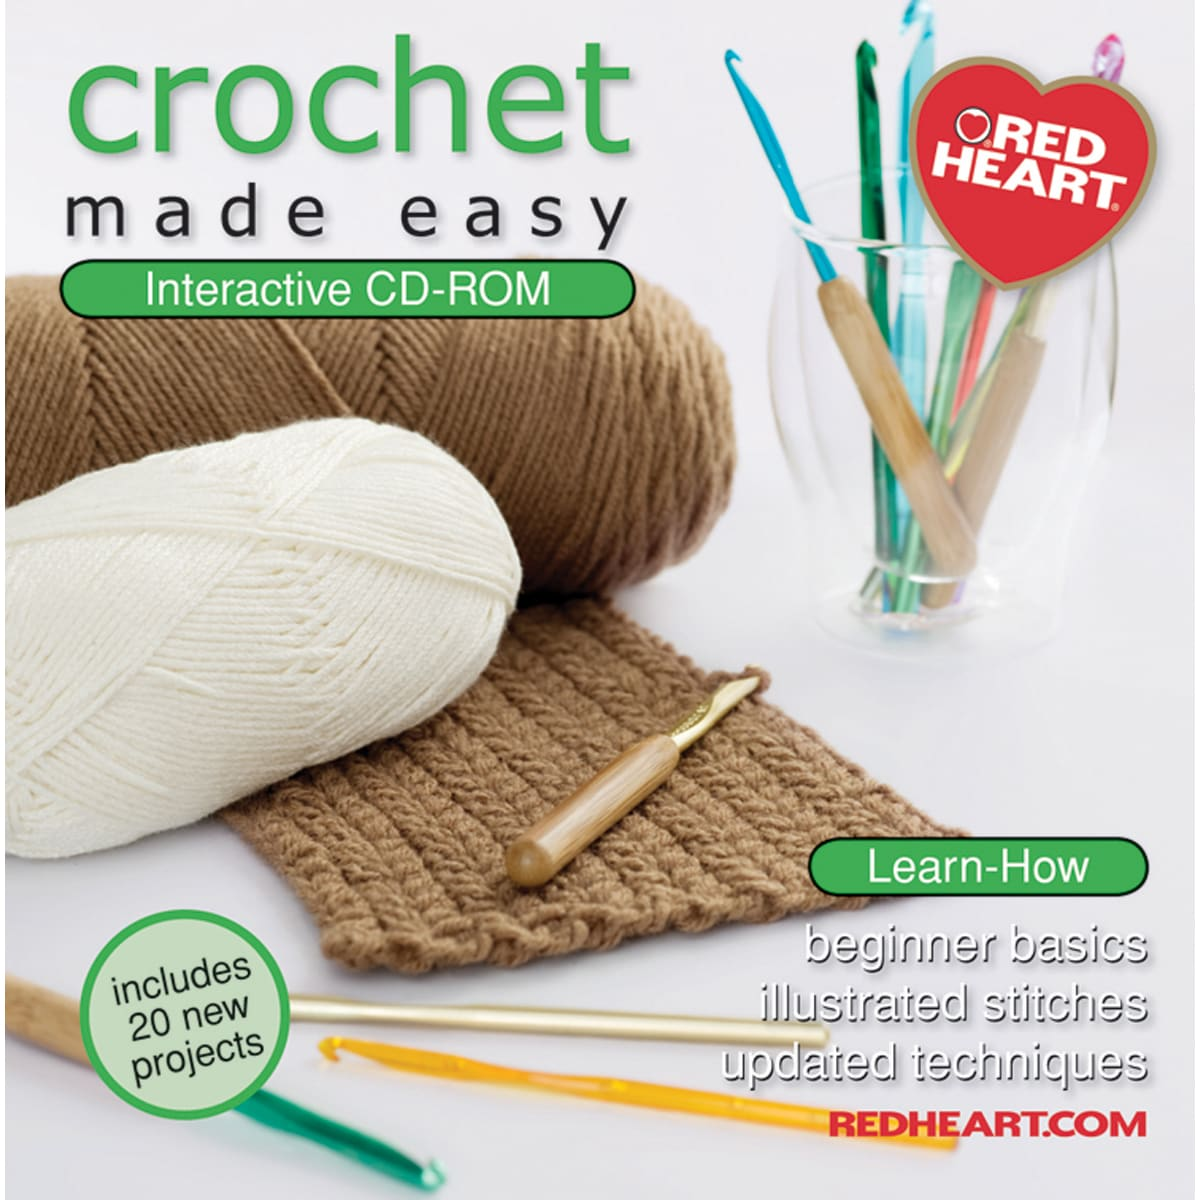 Crocheting Made Easy : Crochet Made Easy CD-ROM - 14297810 - Overstock.com Shopping - Big ...